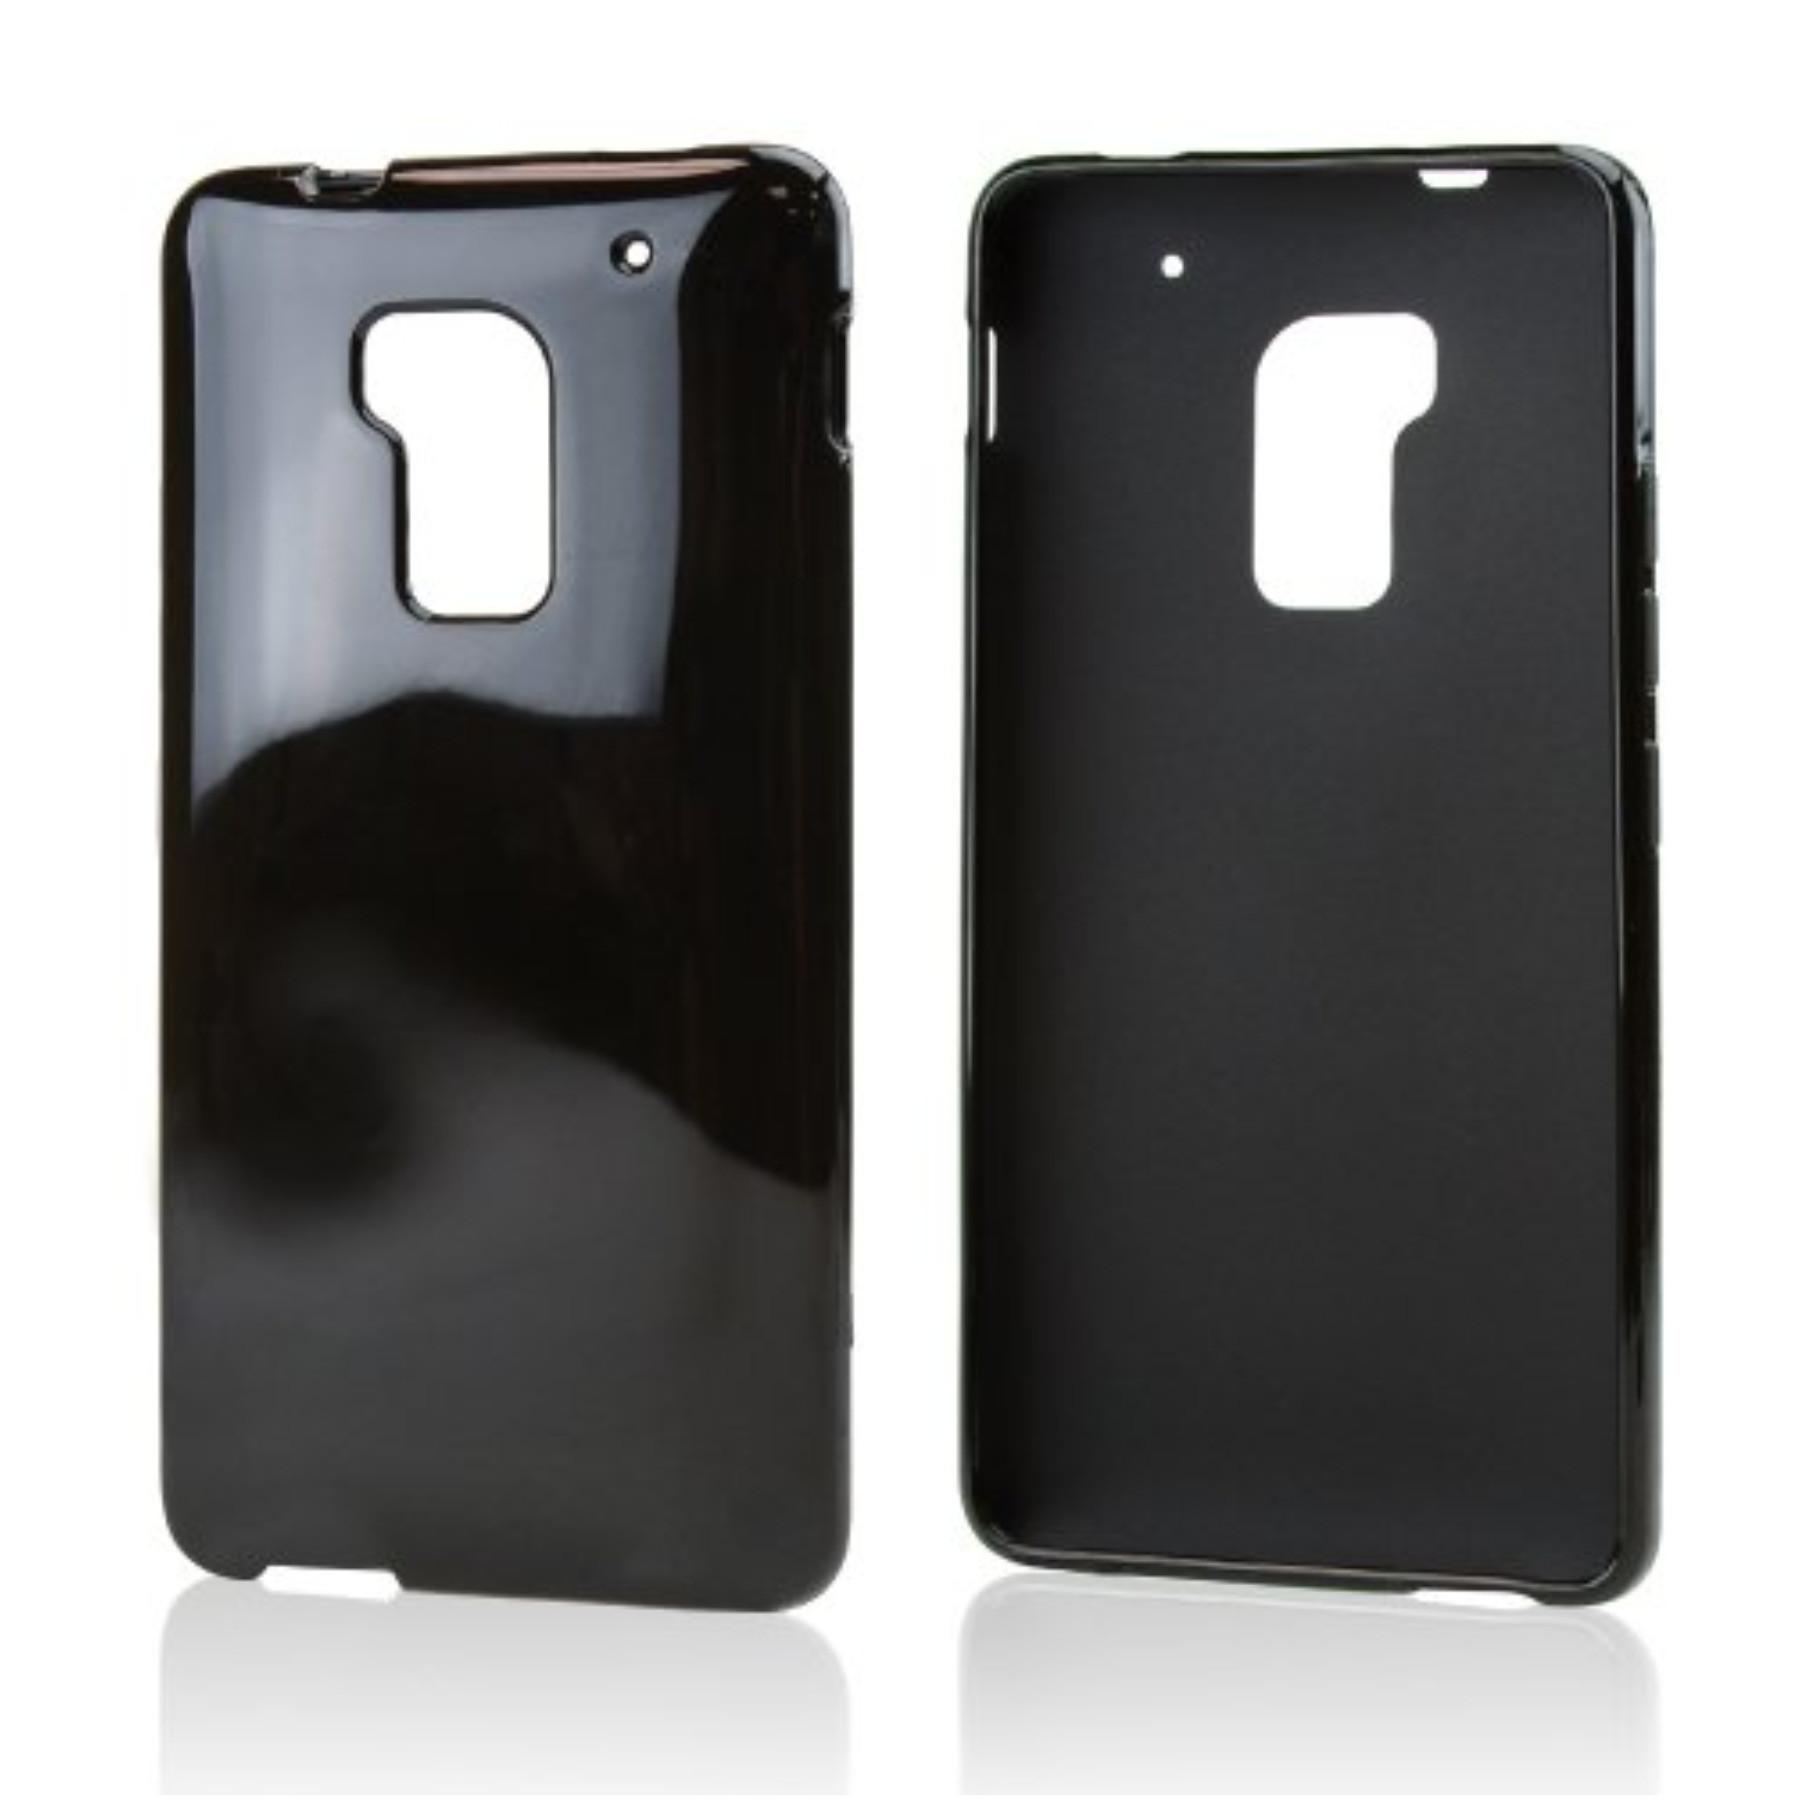 Karendeals Black Htc One Max Tpu Gel Case Cover Anti Slip